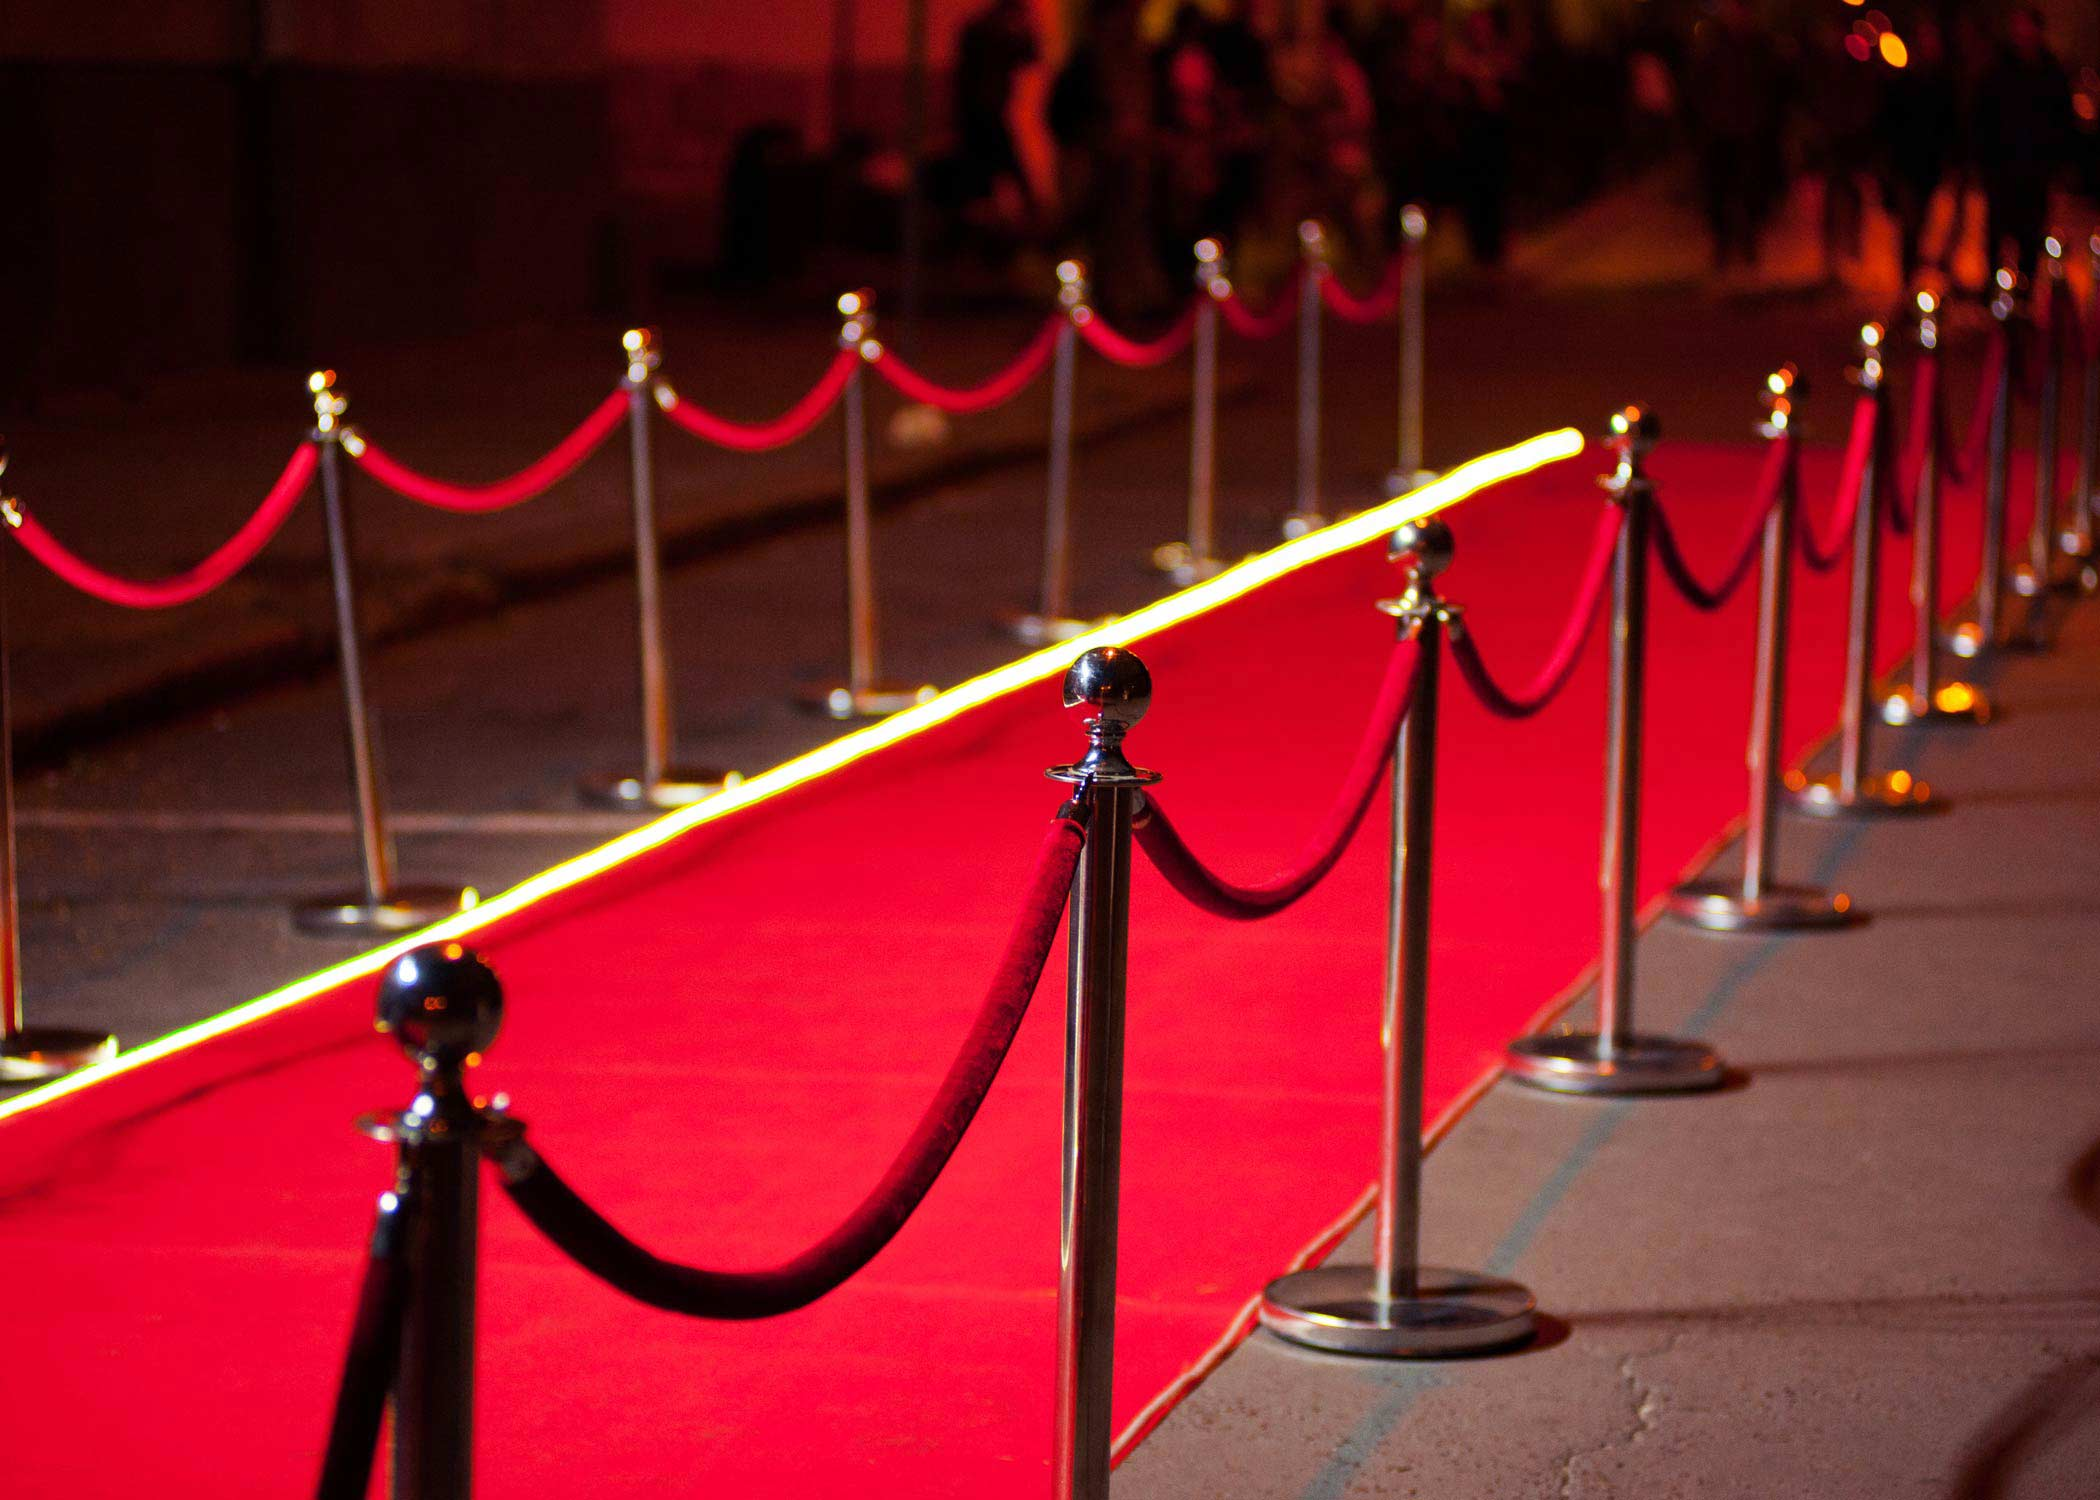 Image of a red carpet premiere